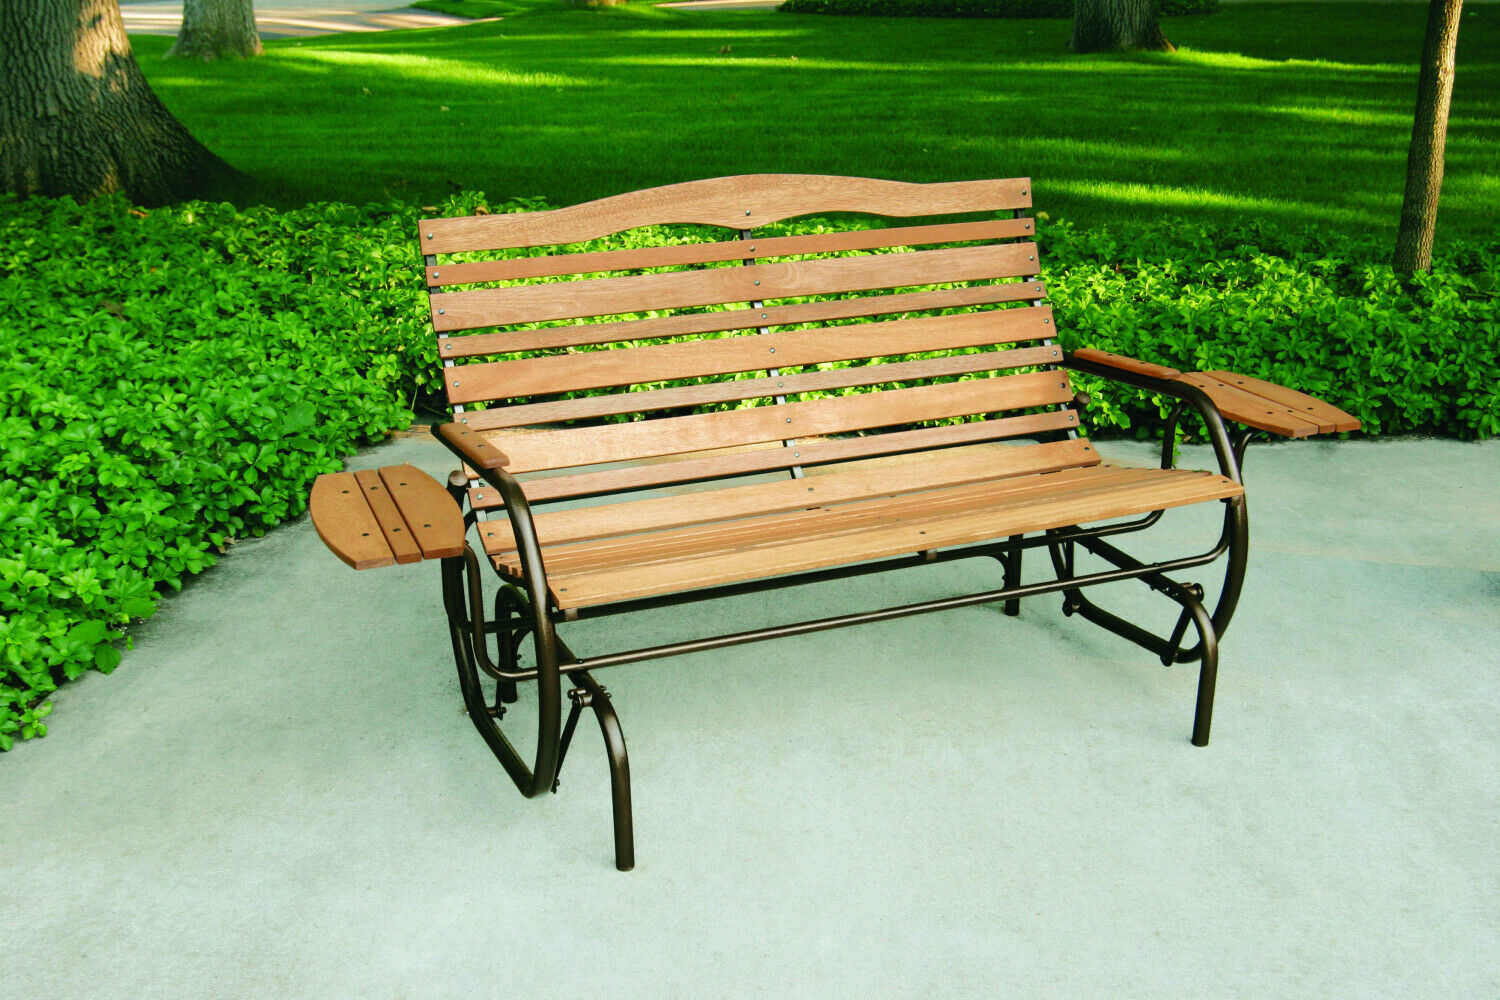 Wood Patio Bench Glider With Trays Outdoor Garden Porch Swing Chair Loveseat